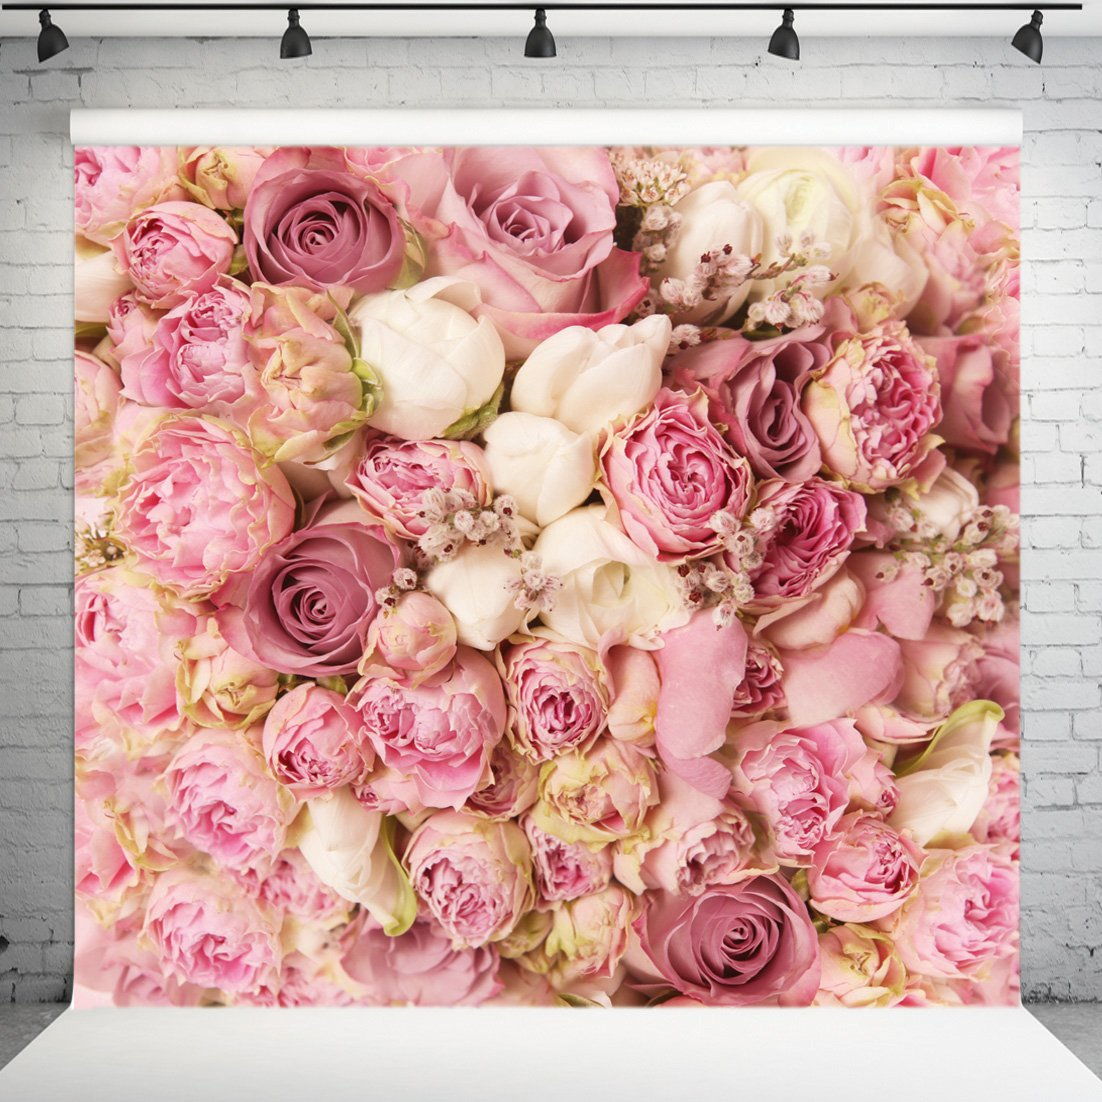 WOLADA 8x8ft Rose Floral Party Wedding Backdrop for Photorgaphy Baby Shower Marriage Photo Backdrop for Studio Props 9604 by WOLADA